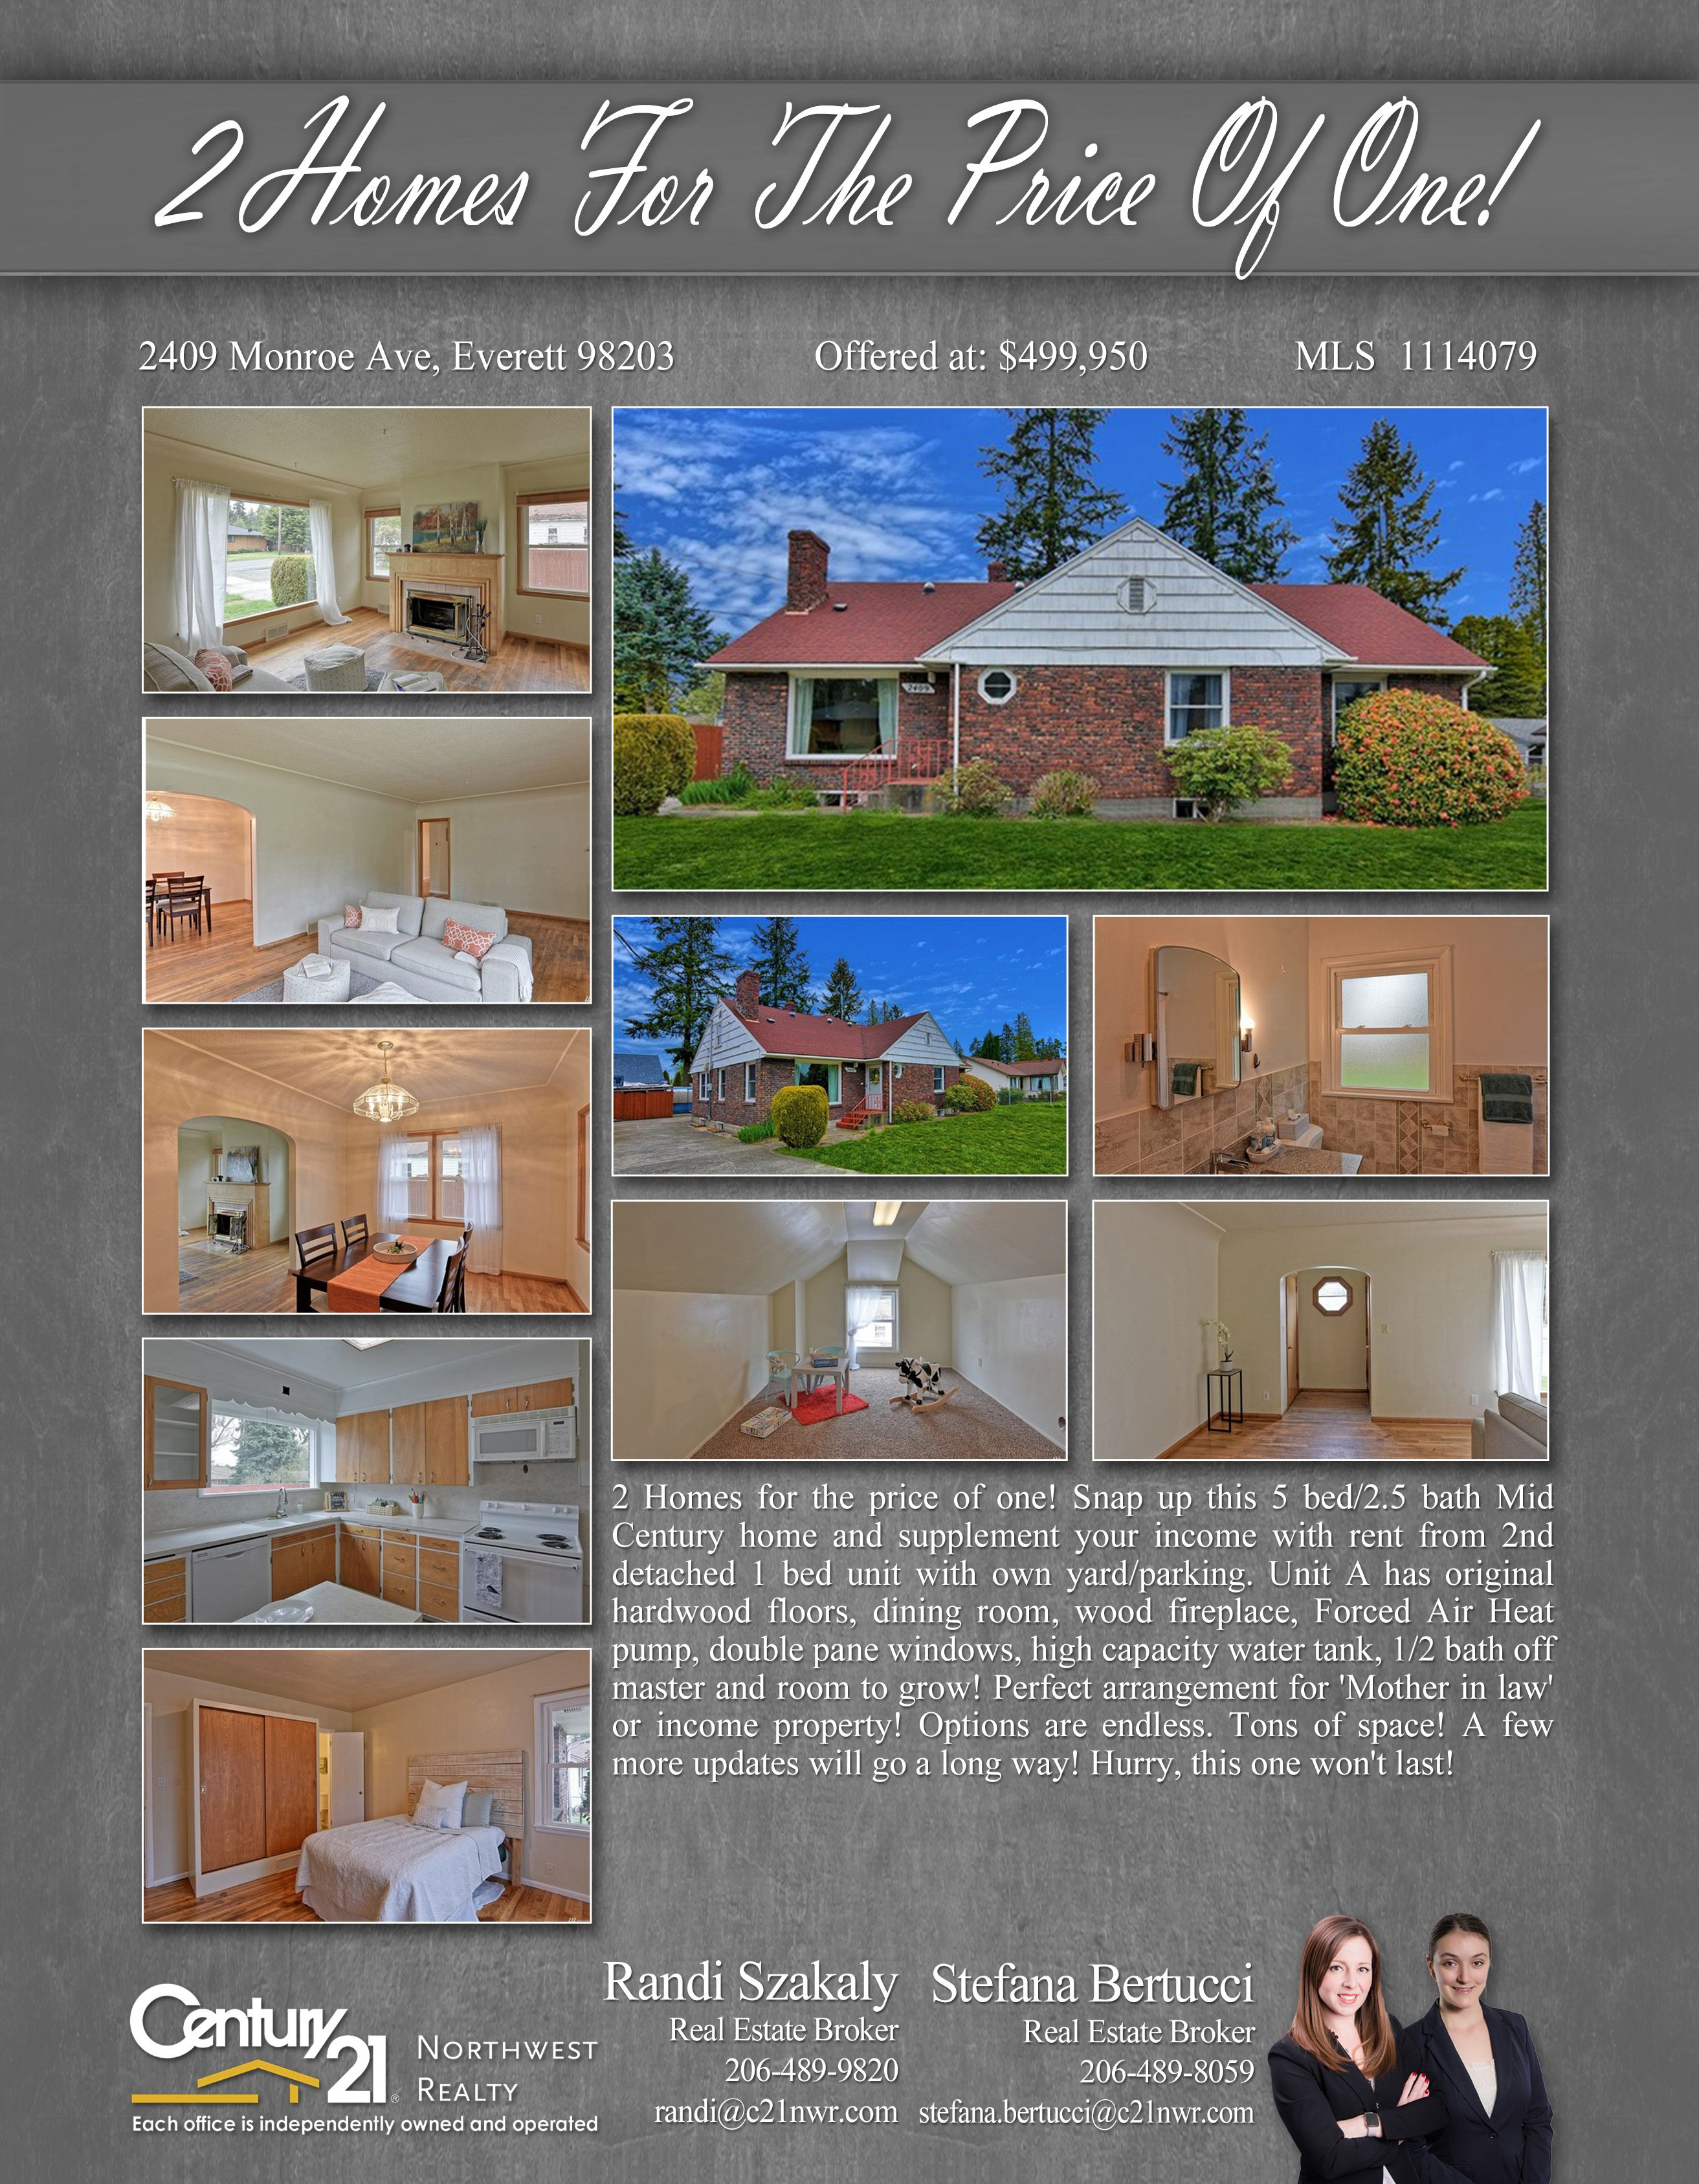 2 Homes for a price of One in Monroe Ave., Everett! Vacant